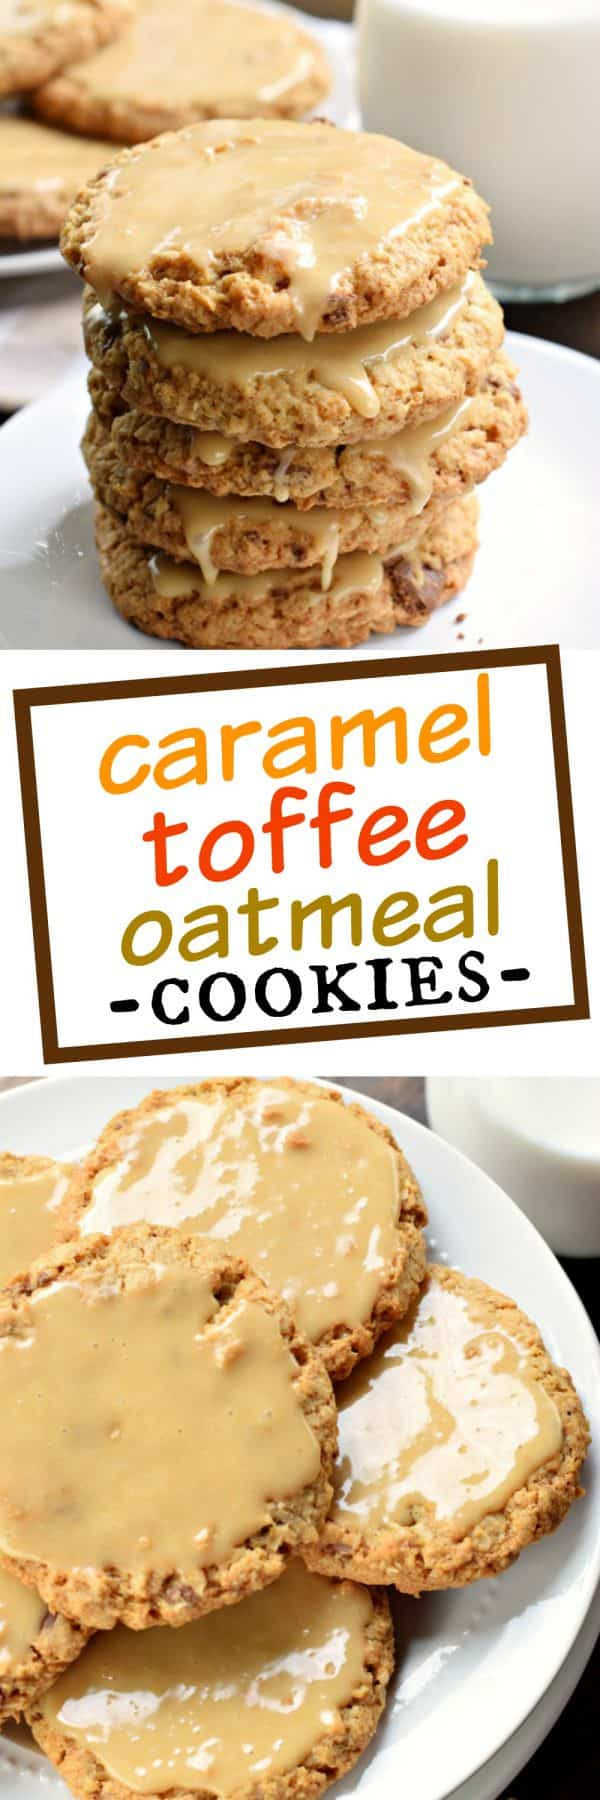 These homestyle Iced Caramel Toffee Oatmeal Cookies are better than anything bought in a store! Bake a batch today and watch them disappear!